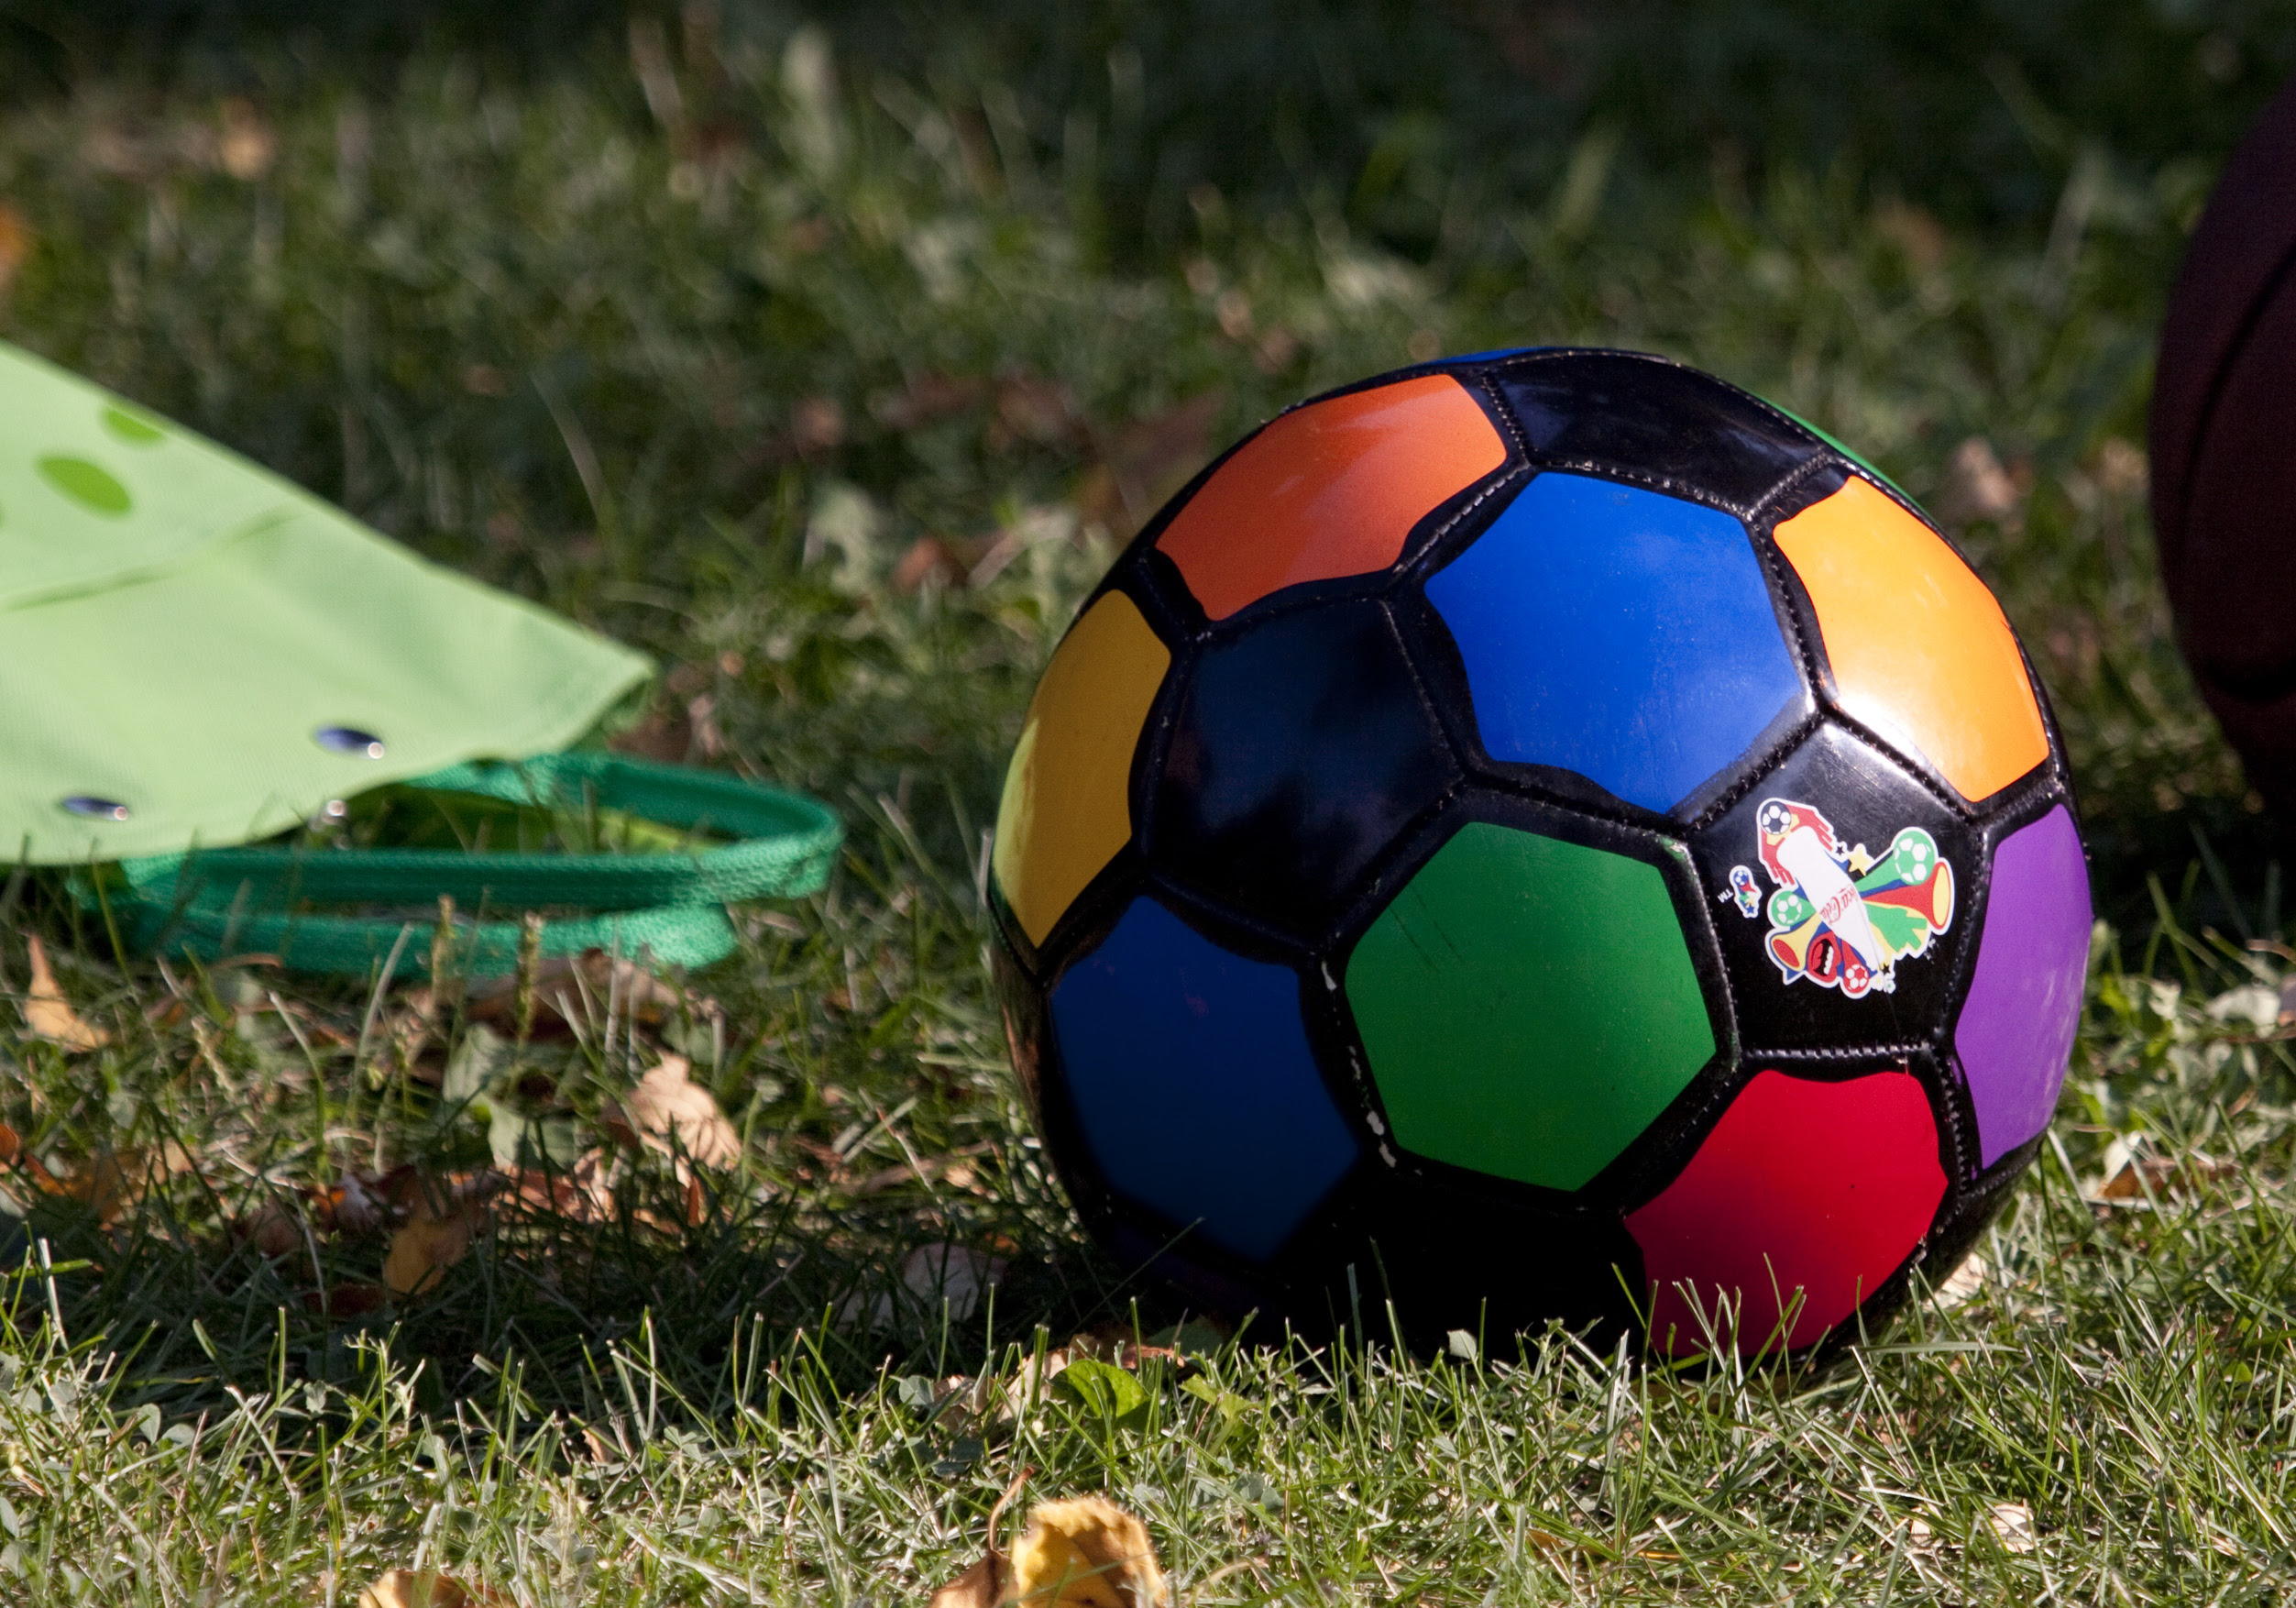 coloruful soccer ball and bag2